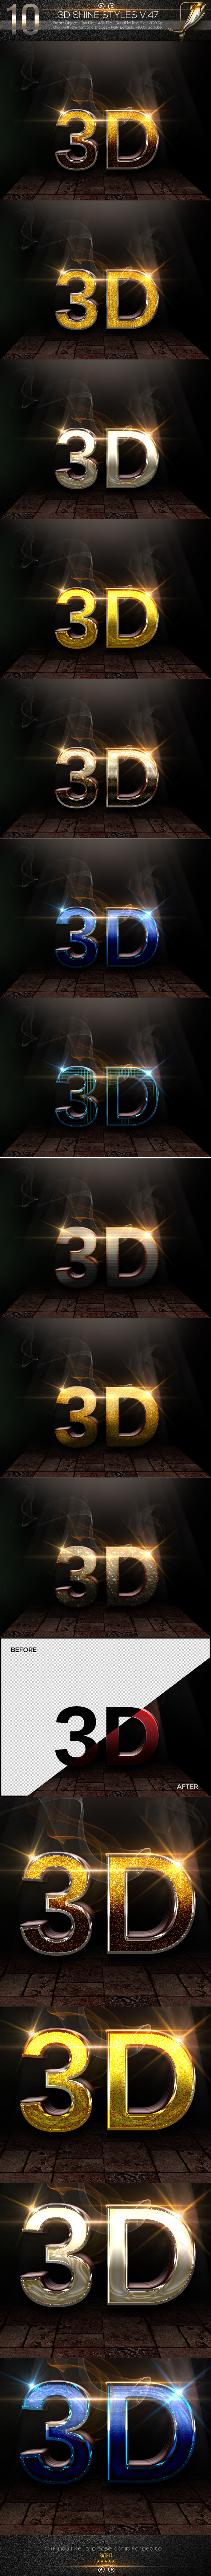 GraphicRiver 10 3D Text Styles V.47 11890070